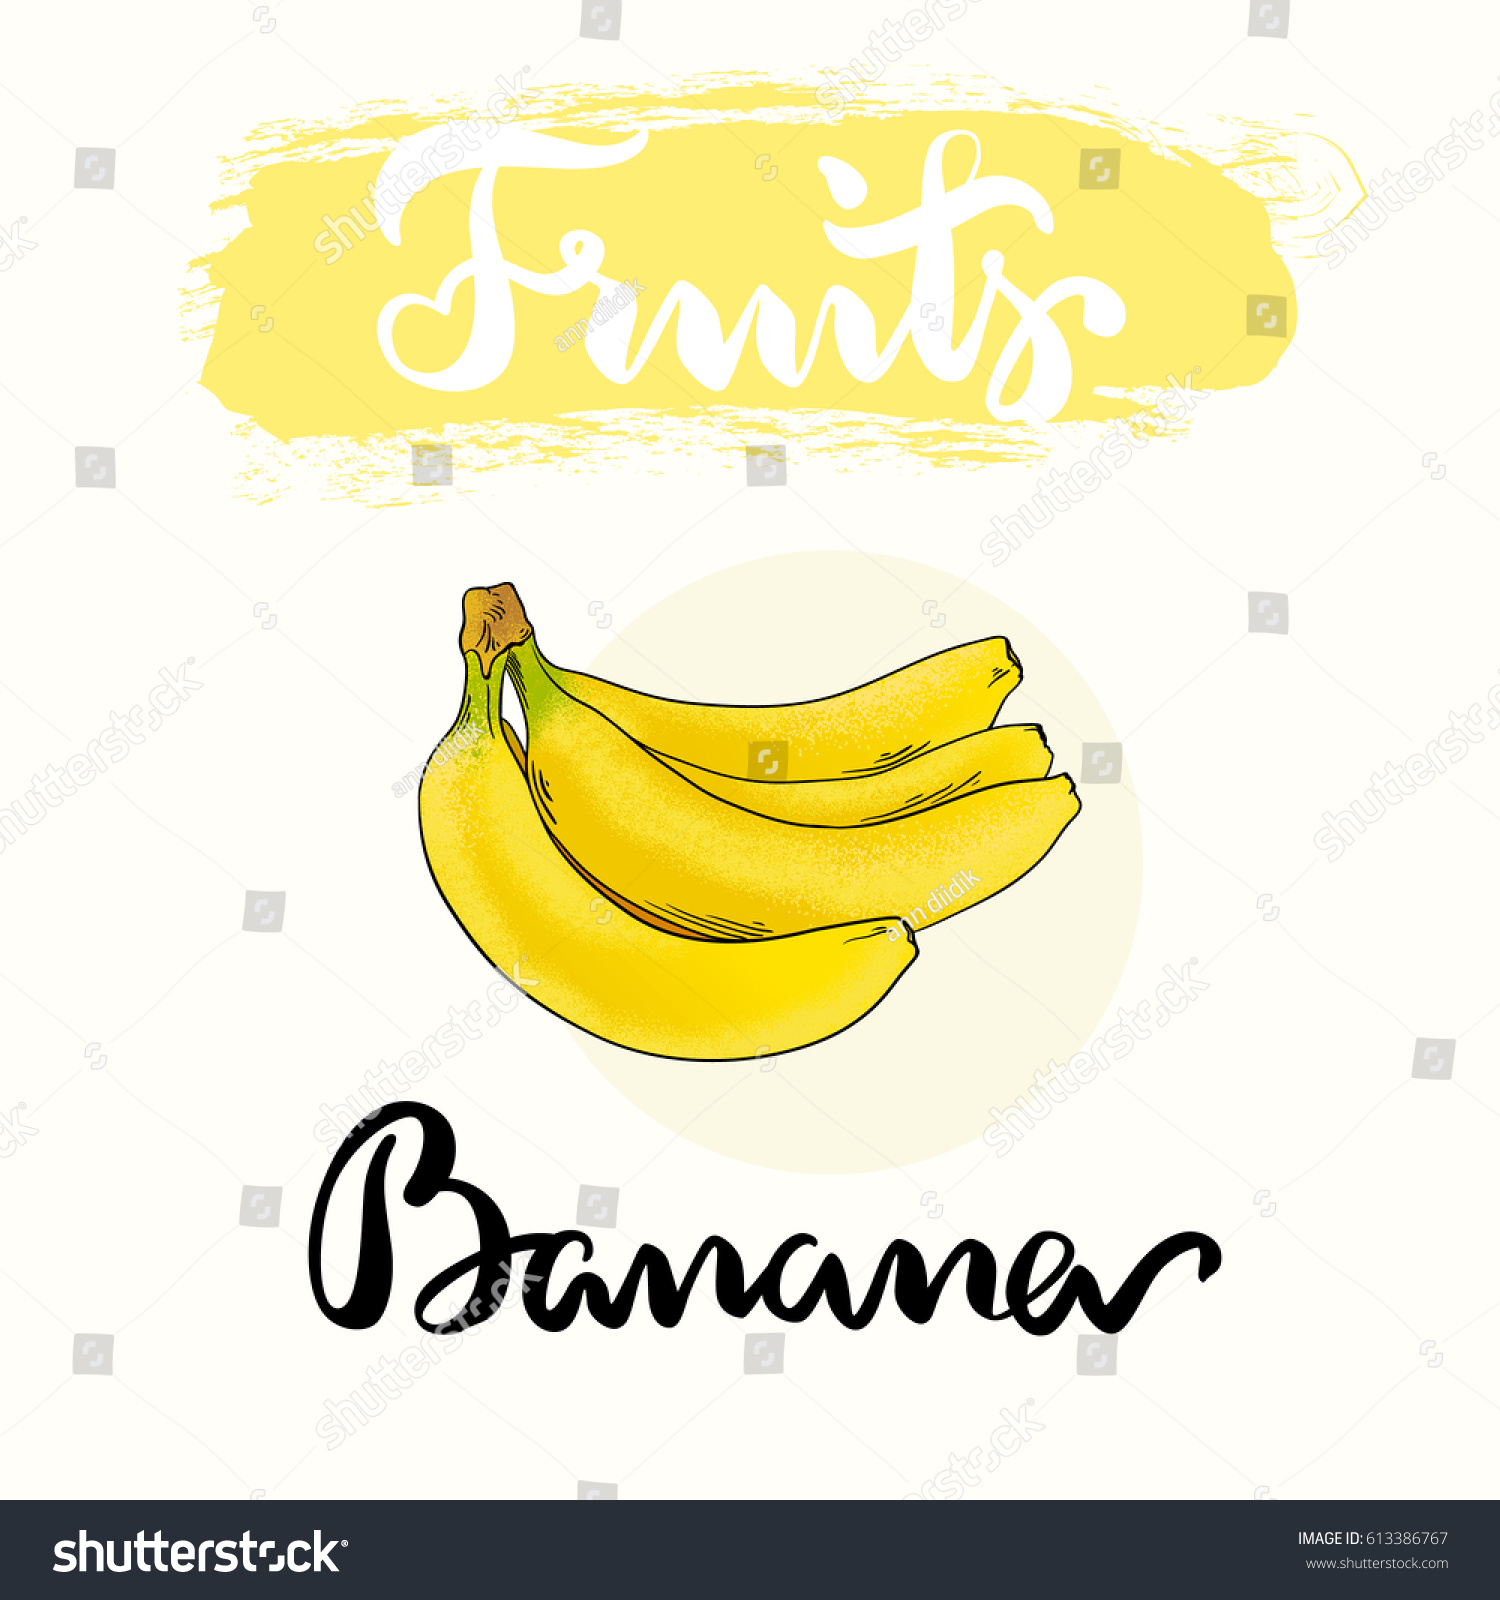 banana fruit label design product collection stock vector (royalty